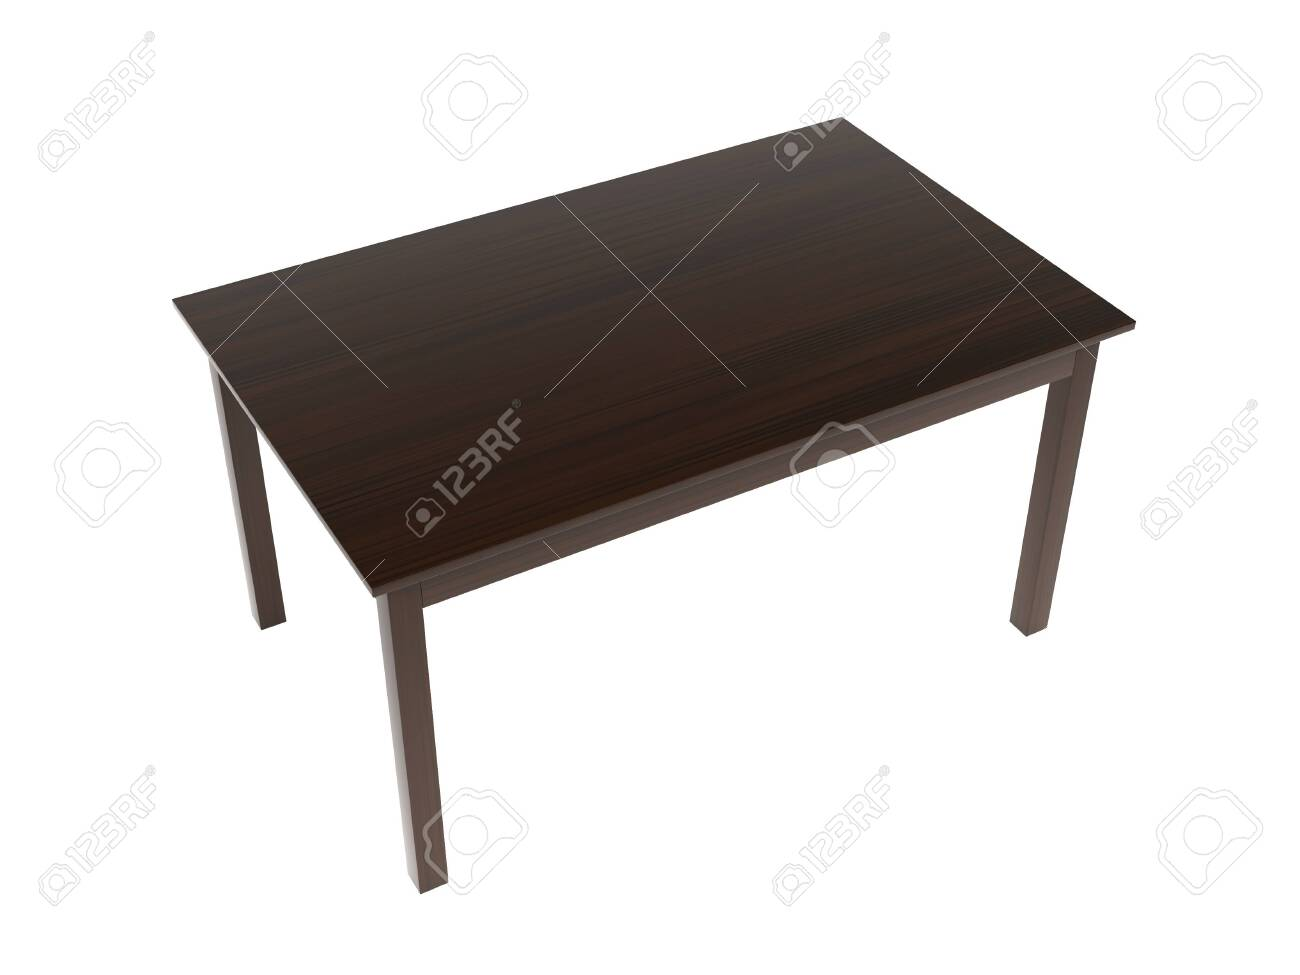 Wooden table. 3d rendering illustration isolated on white background - 150521122